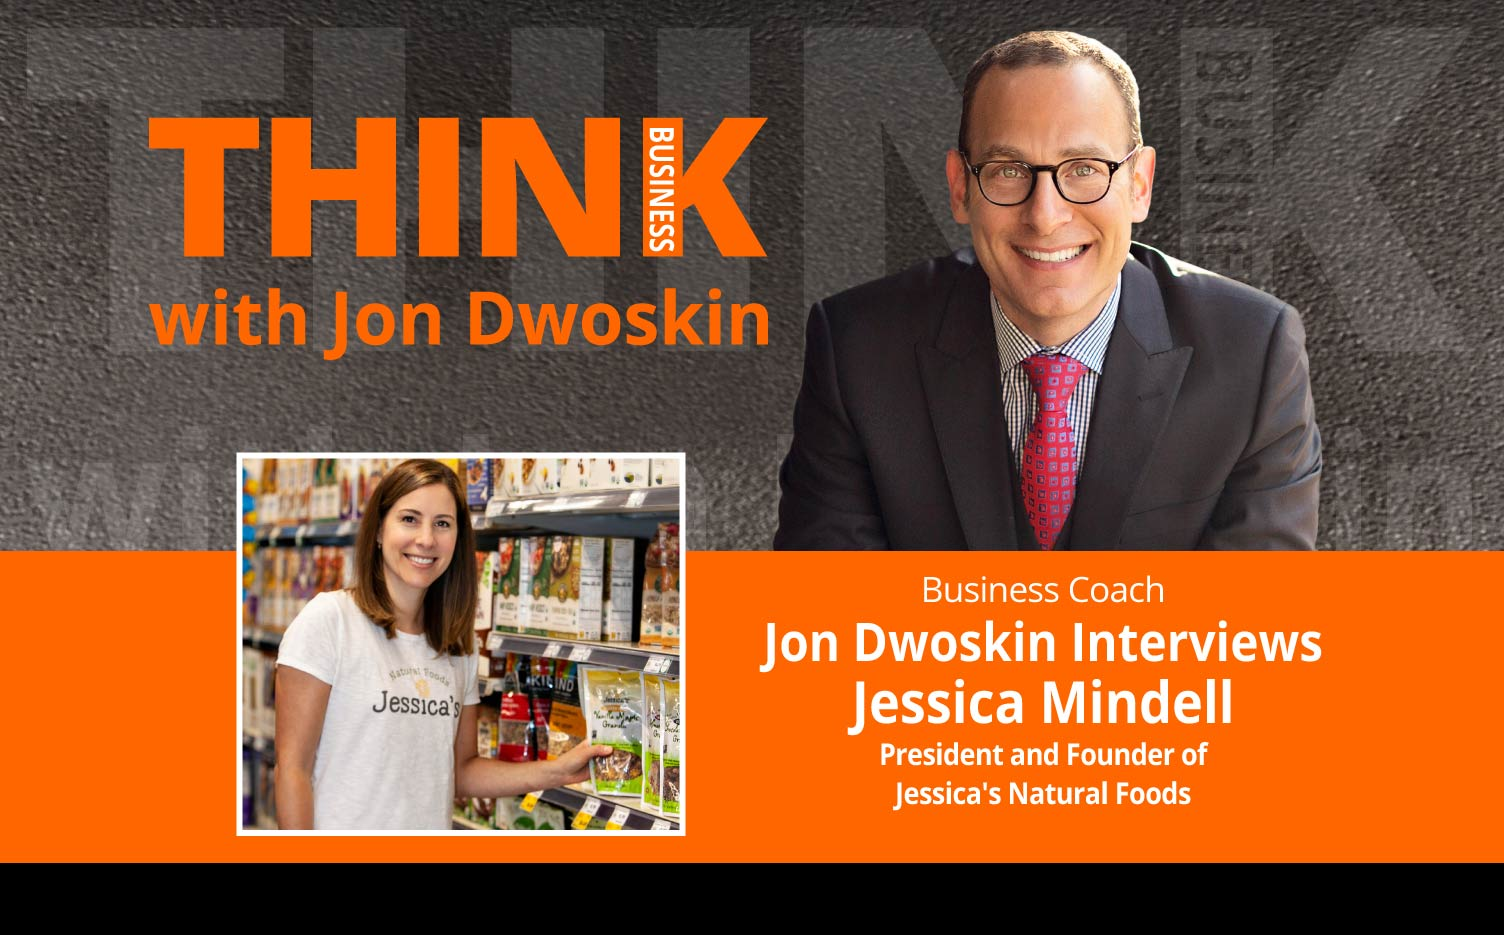 THINK with Jon Dwoskin - January 2020